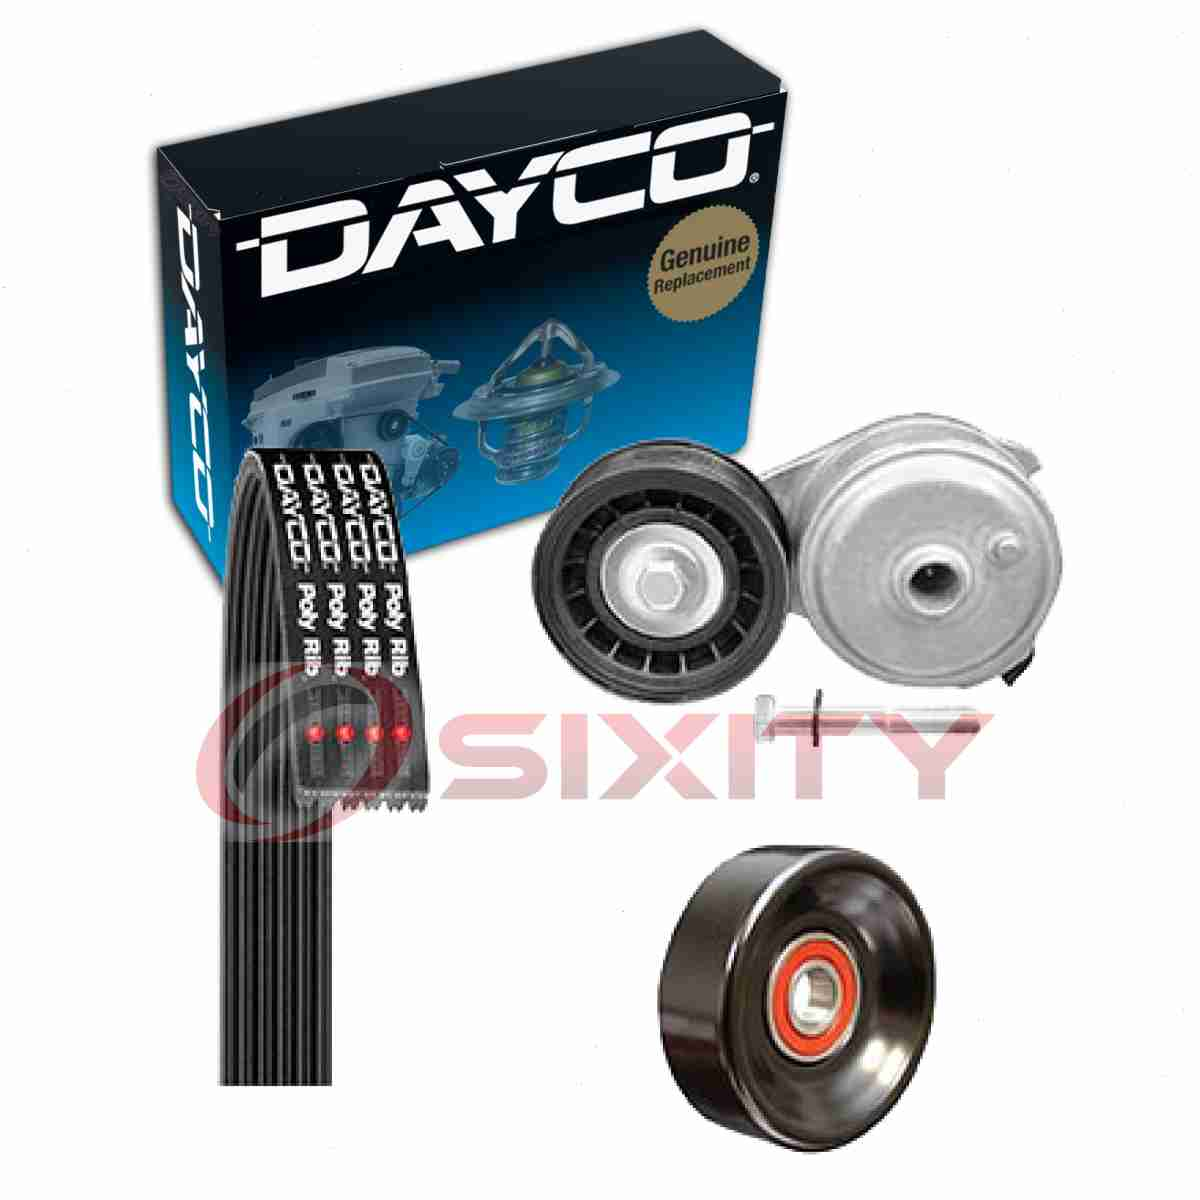 hight resolution of details about dayco serpentine belt drive component kit for 1996 2000 chevrolet tahoe 5 7l vv